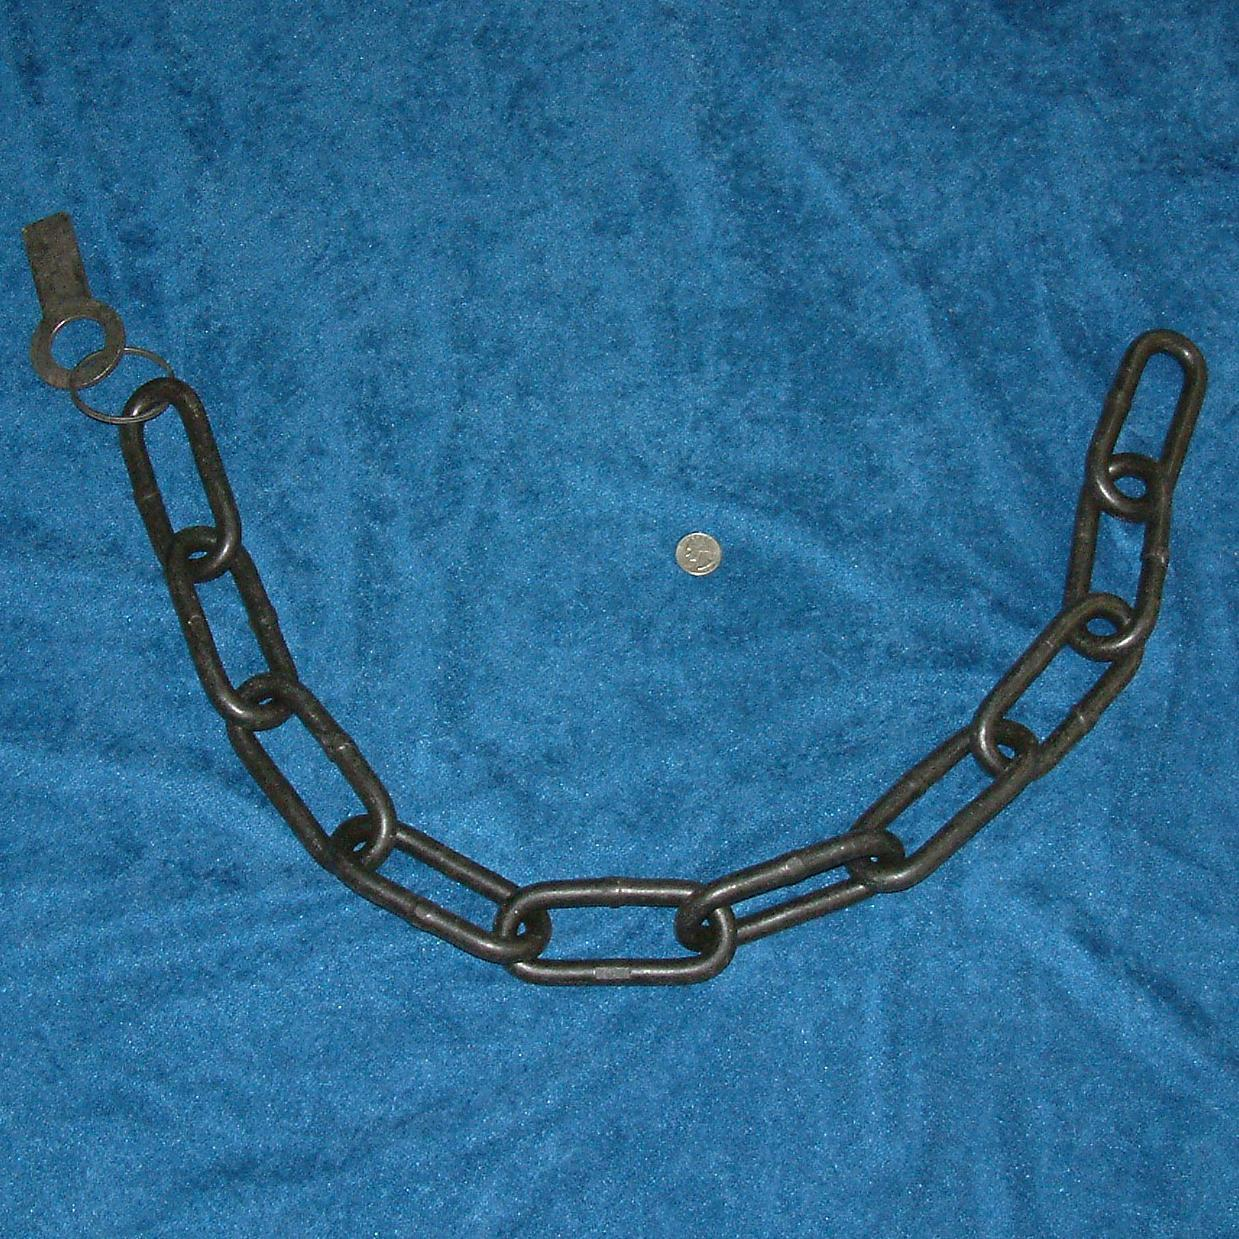 Special Theatrical Alloy Chain